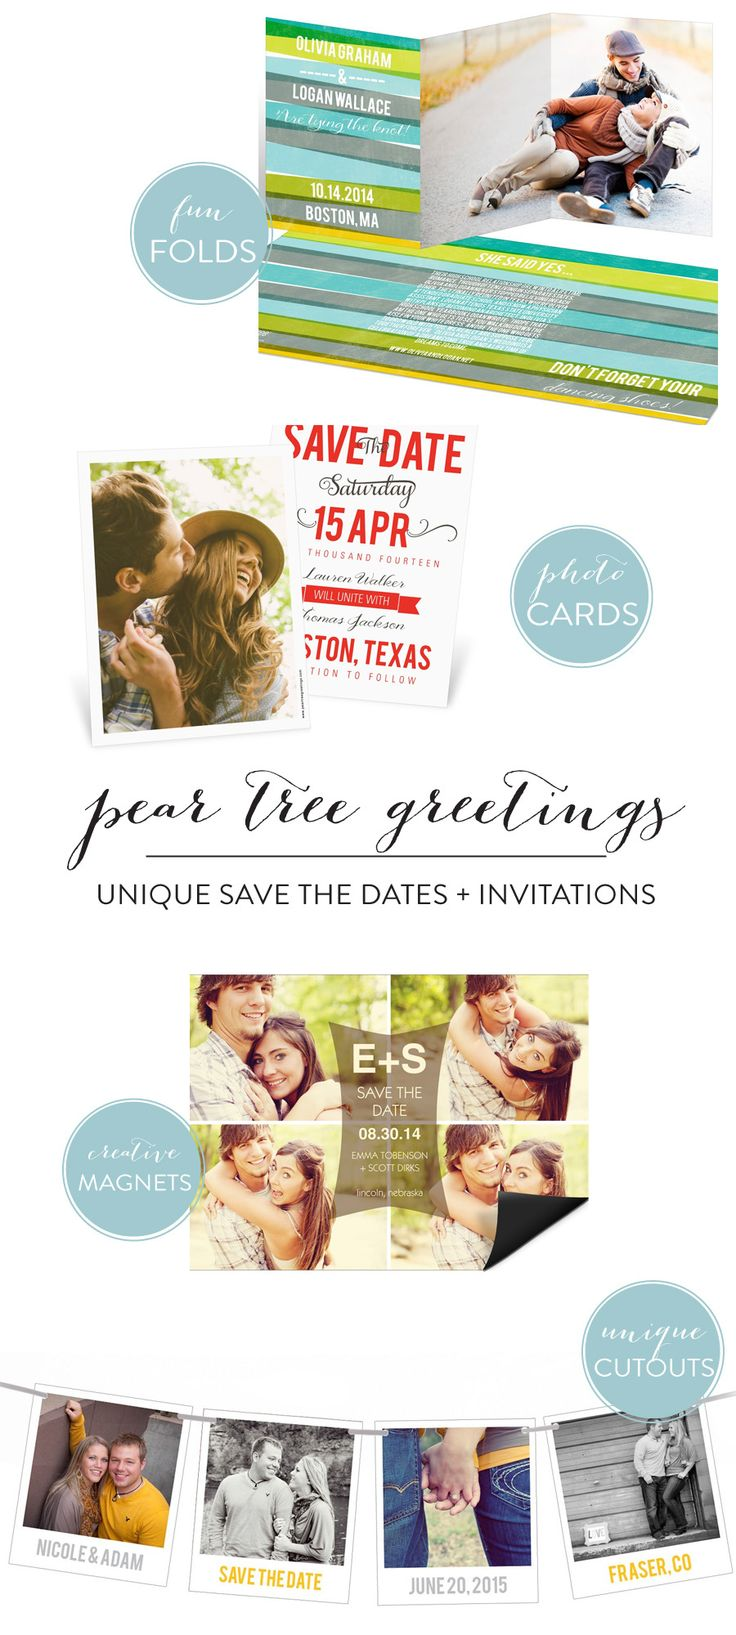 Unique Save the Dates from Pear Tree Greetings + A Discount!  Read more - http://www.stylemepretty.com/2013/11/23/unique-save-the-dates-from-pear-tree-greetings-a-discount/